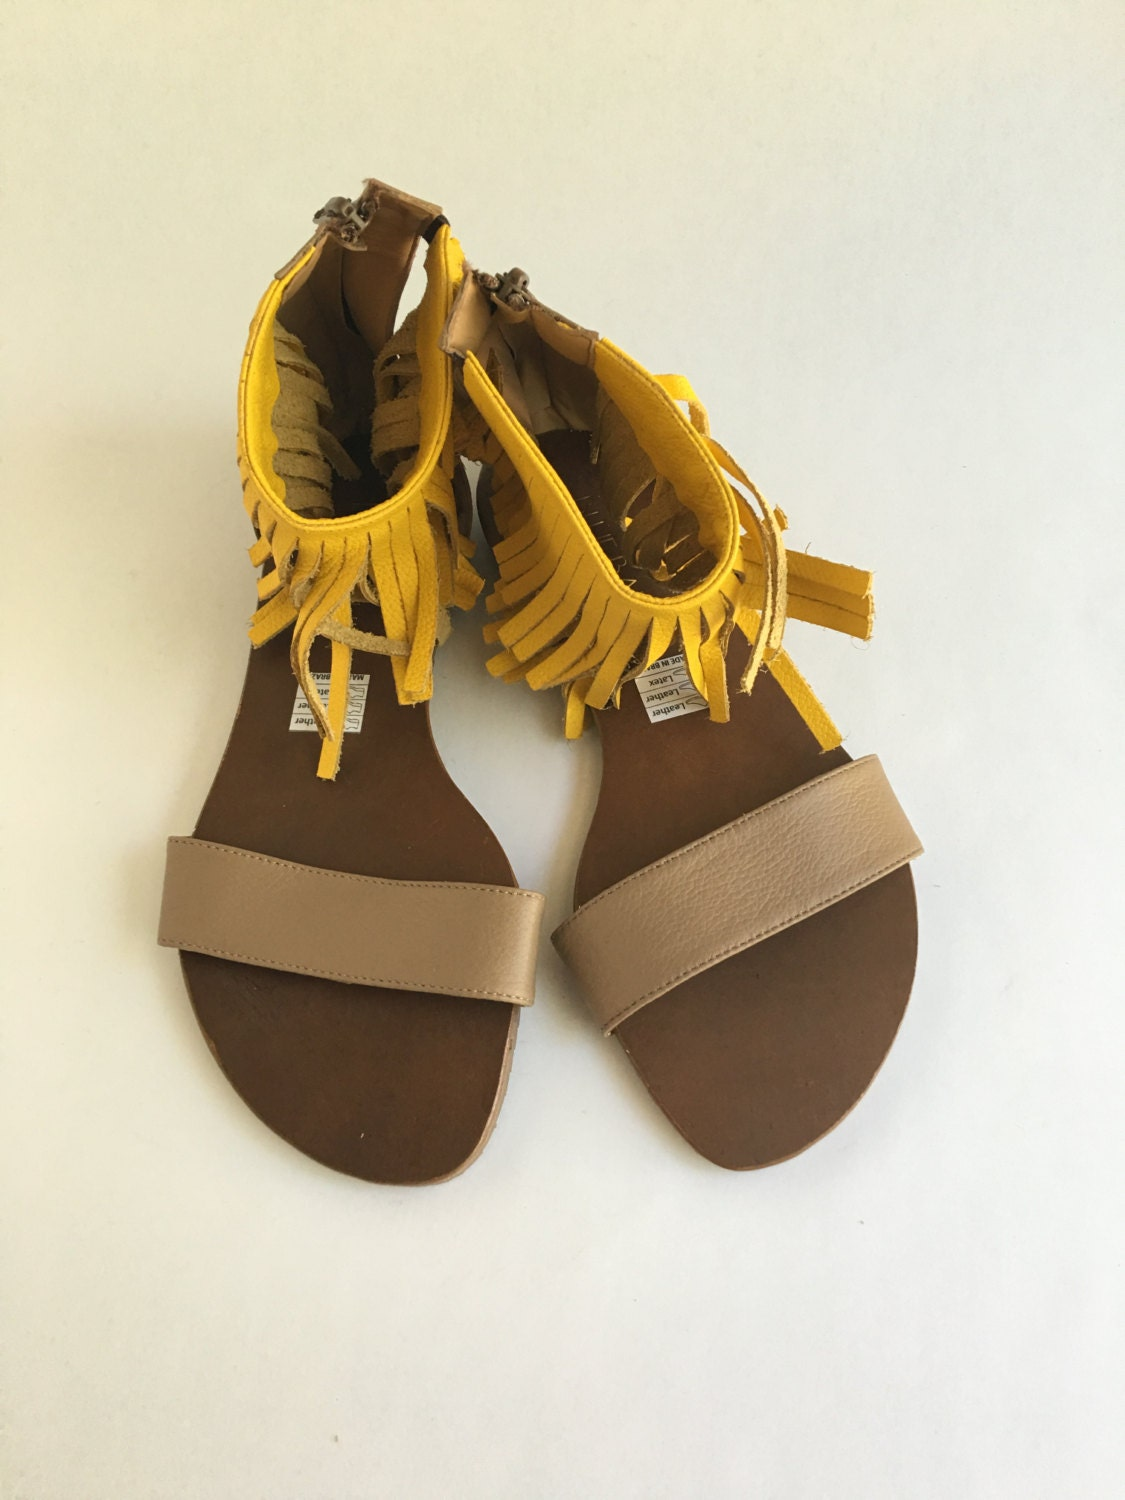 Womens sandals that zip up the back - Brazilian Leather Fringe Sandals With Zip Up Back For Women In Yellow And Brown